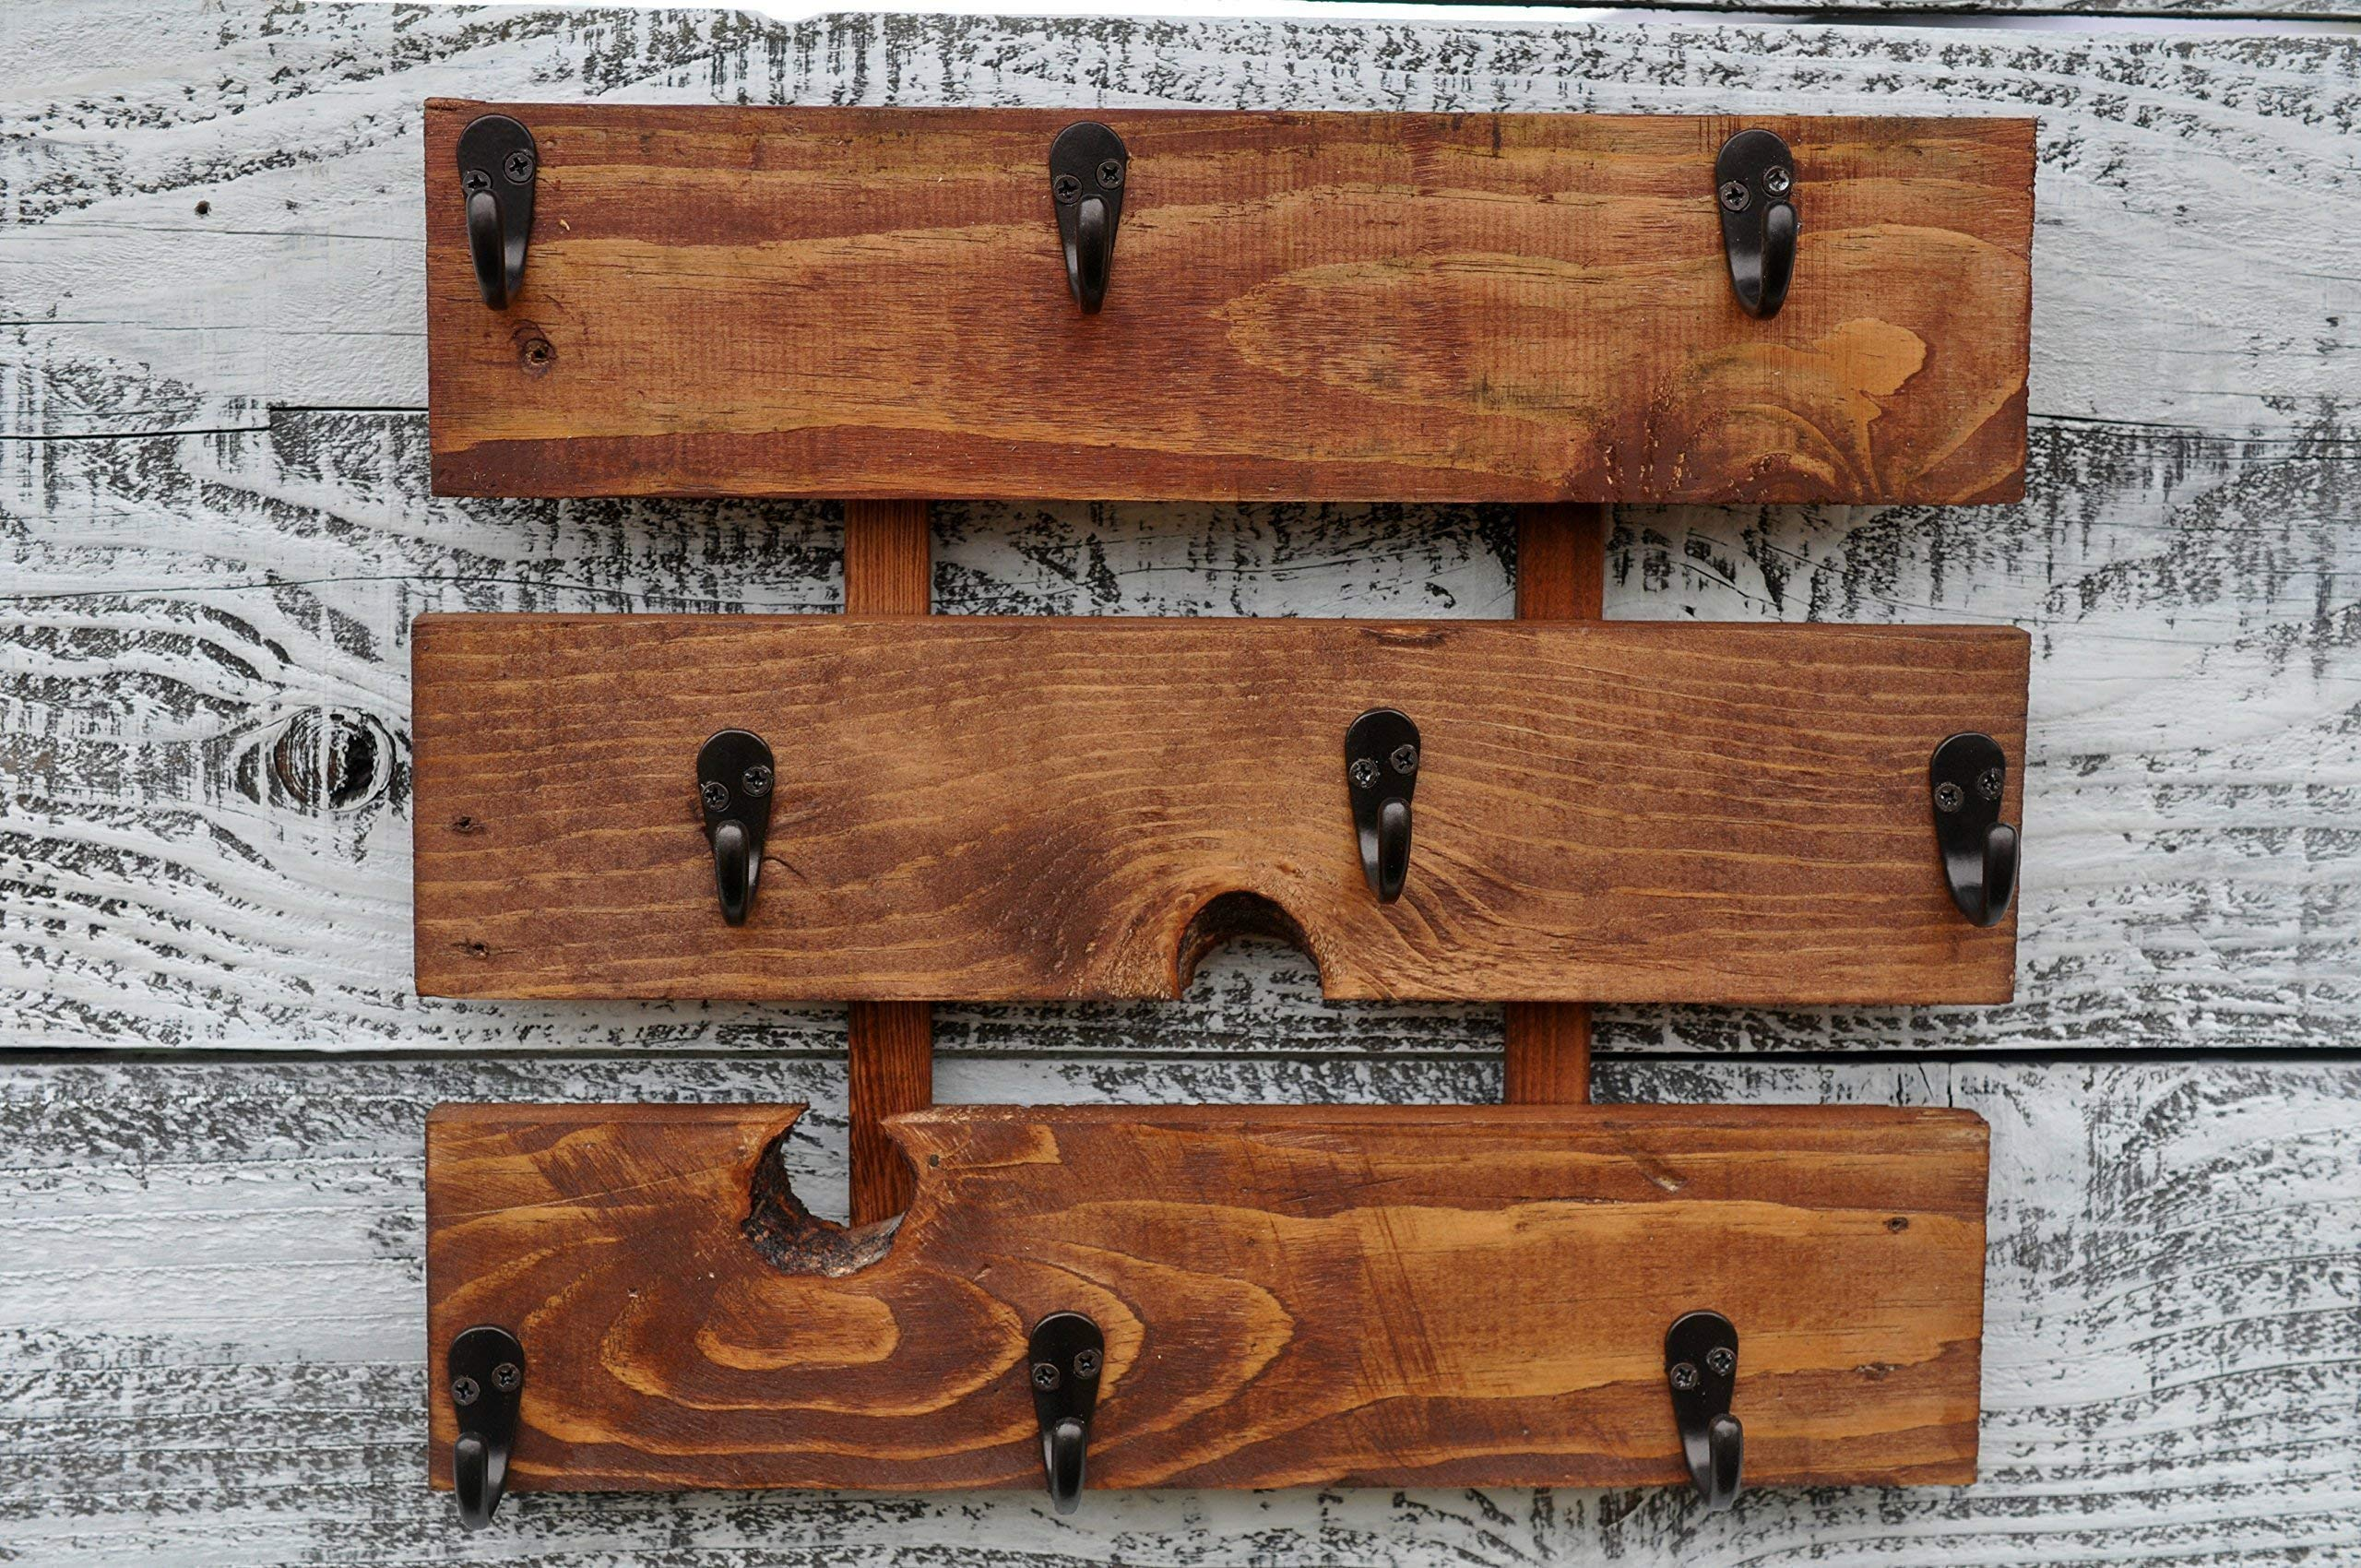 Rustic Wood Coffee Cup Rack Mug Holder Wall Mounted Kitchen Storage by Reclaimed Oregon